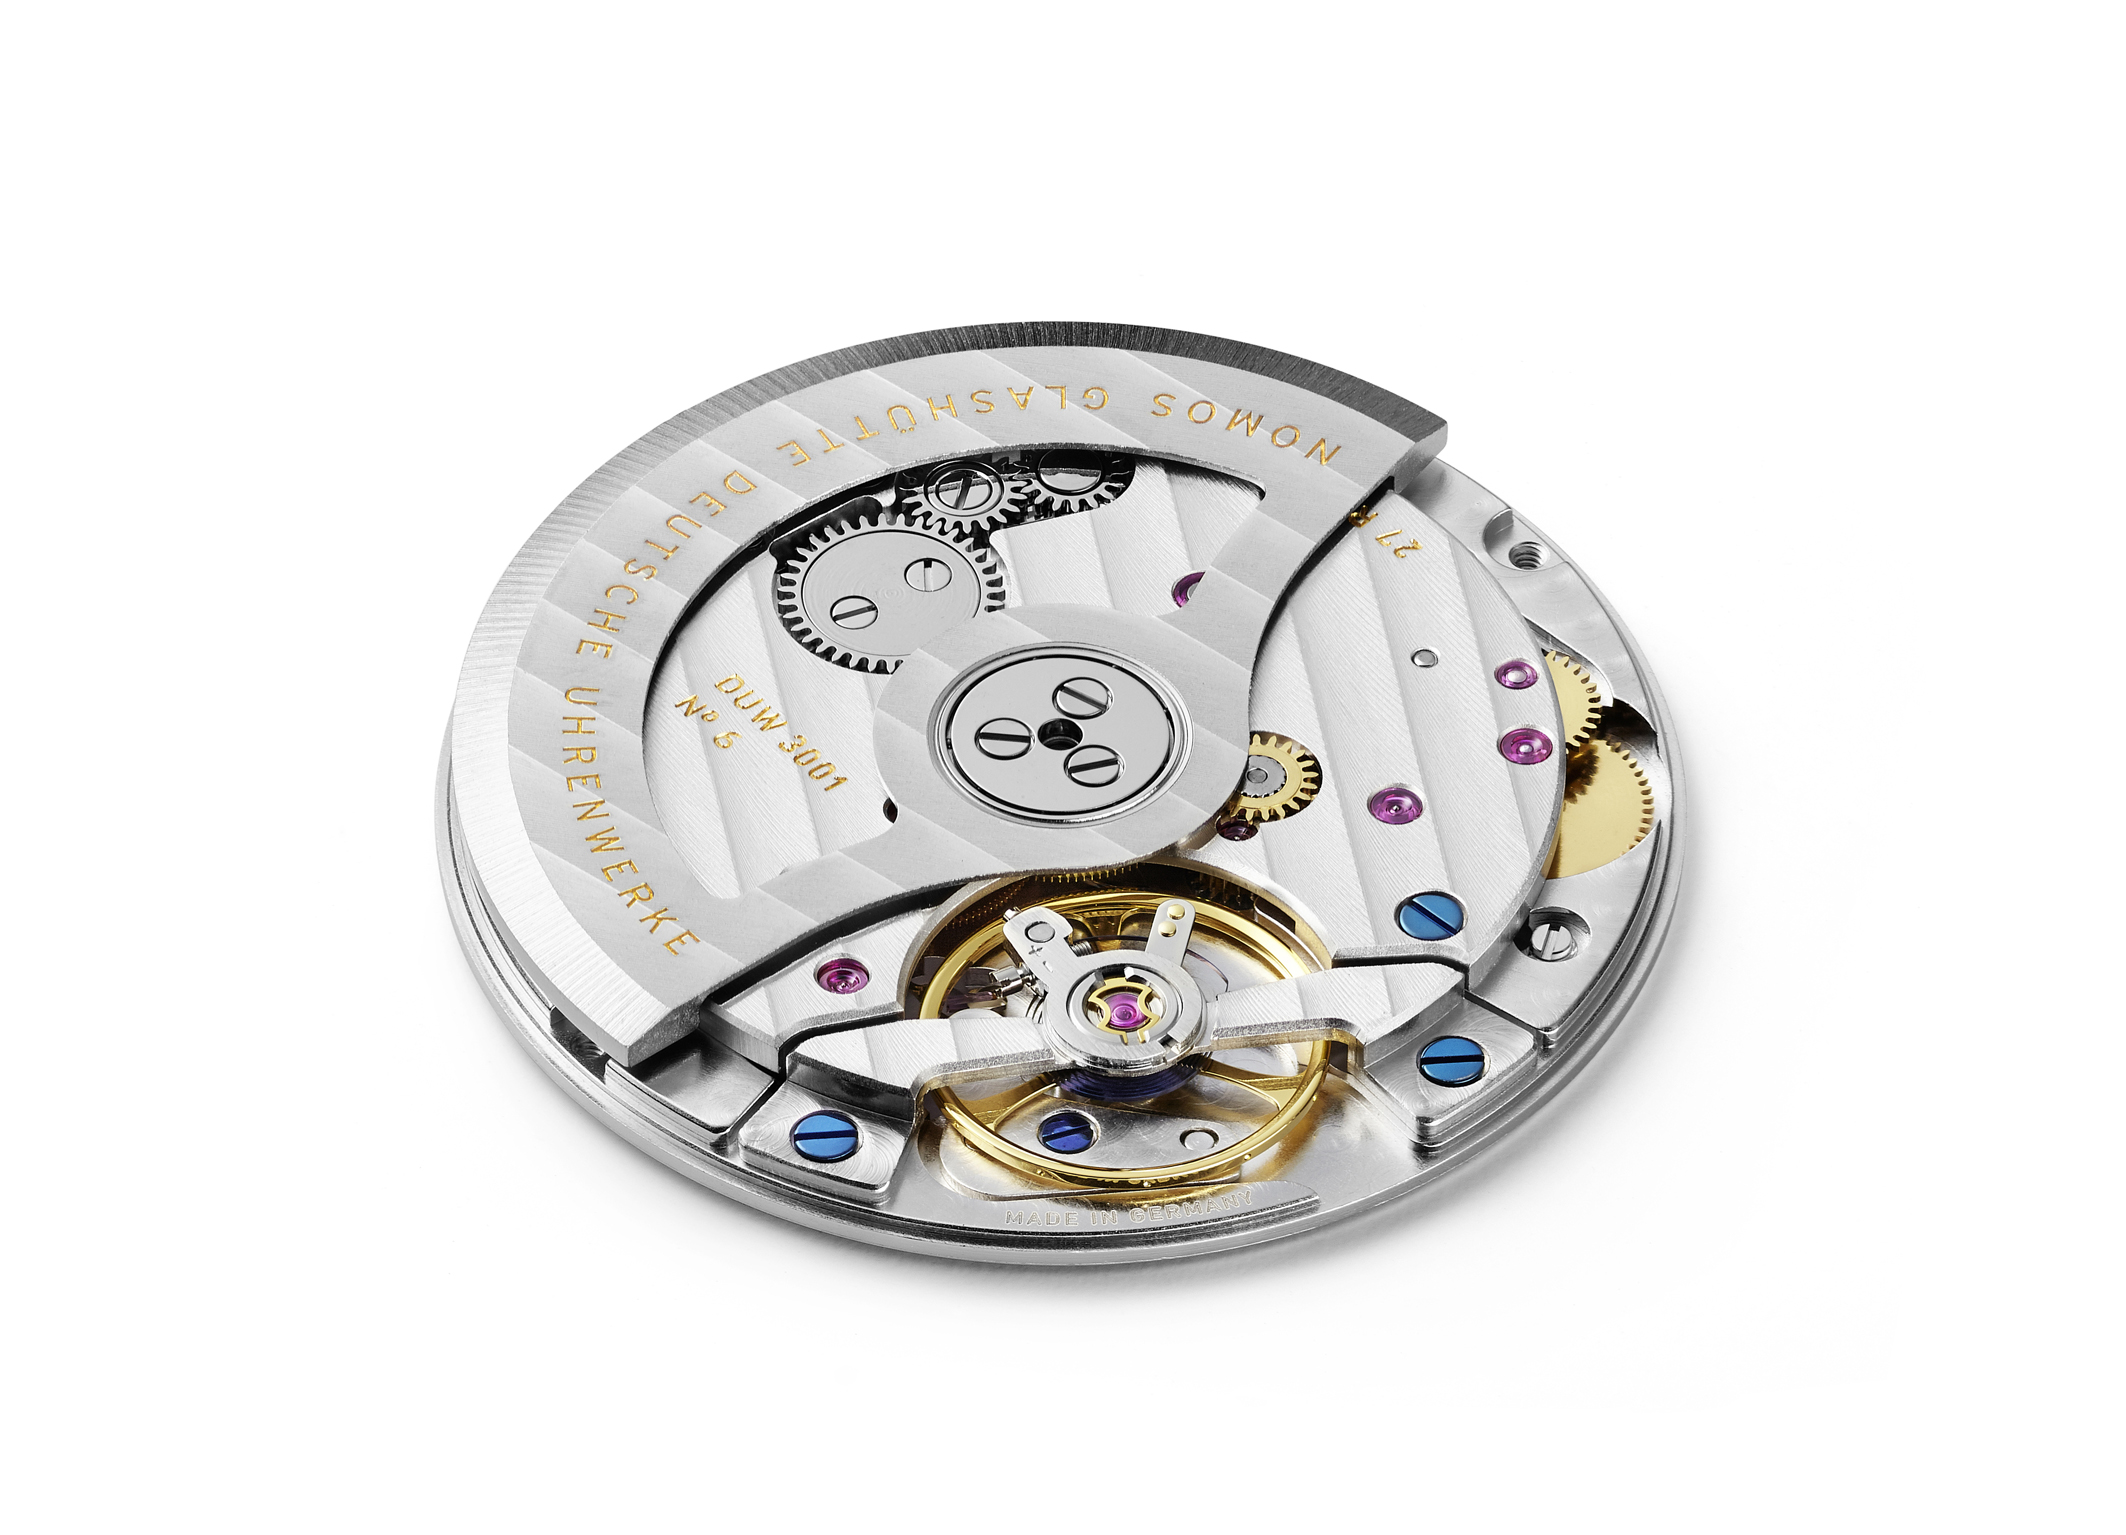 NOMOS DUW 3001 movement